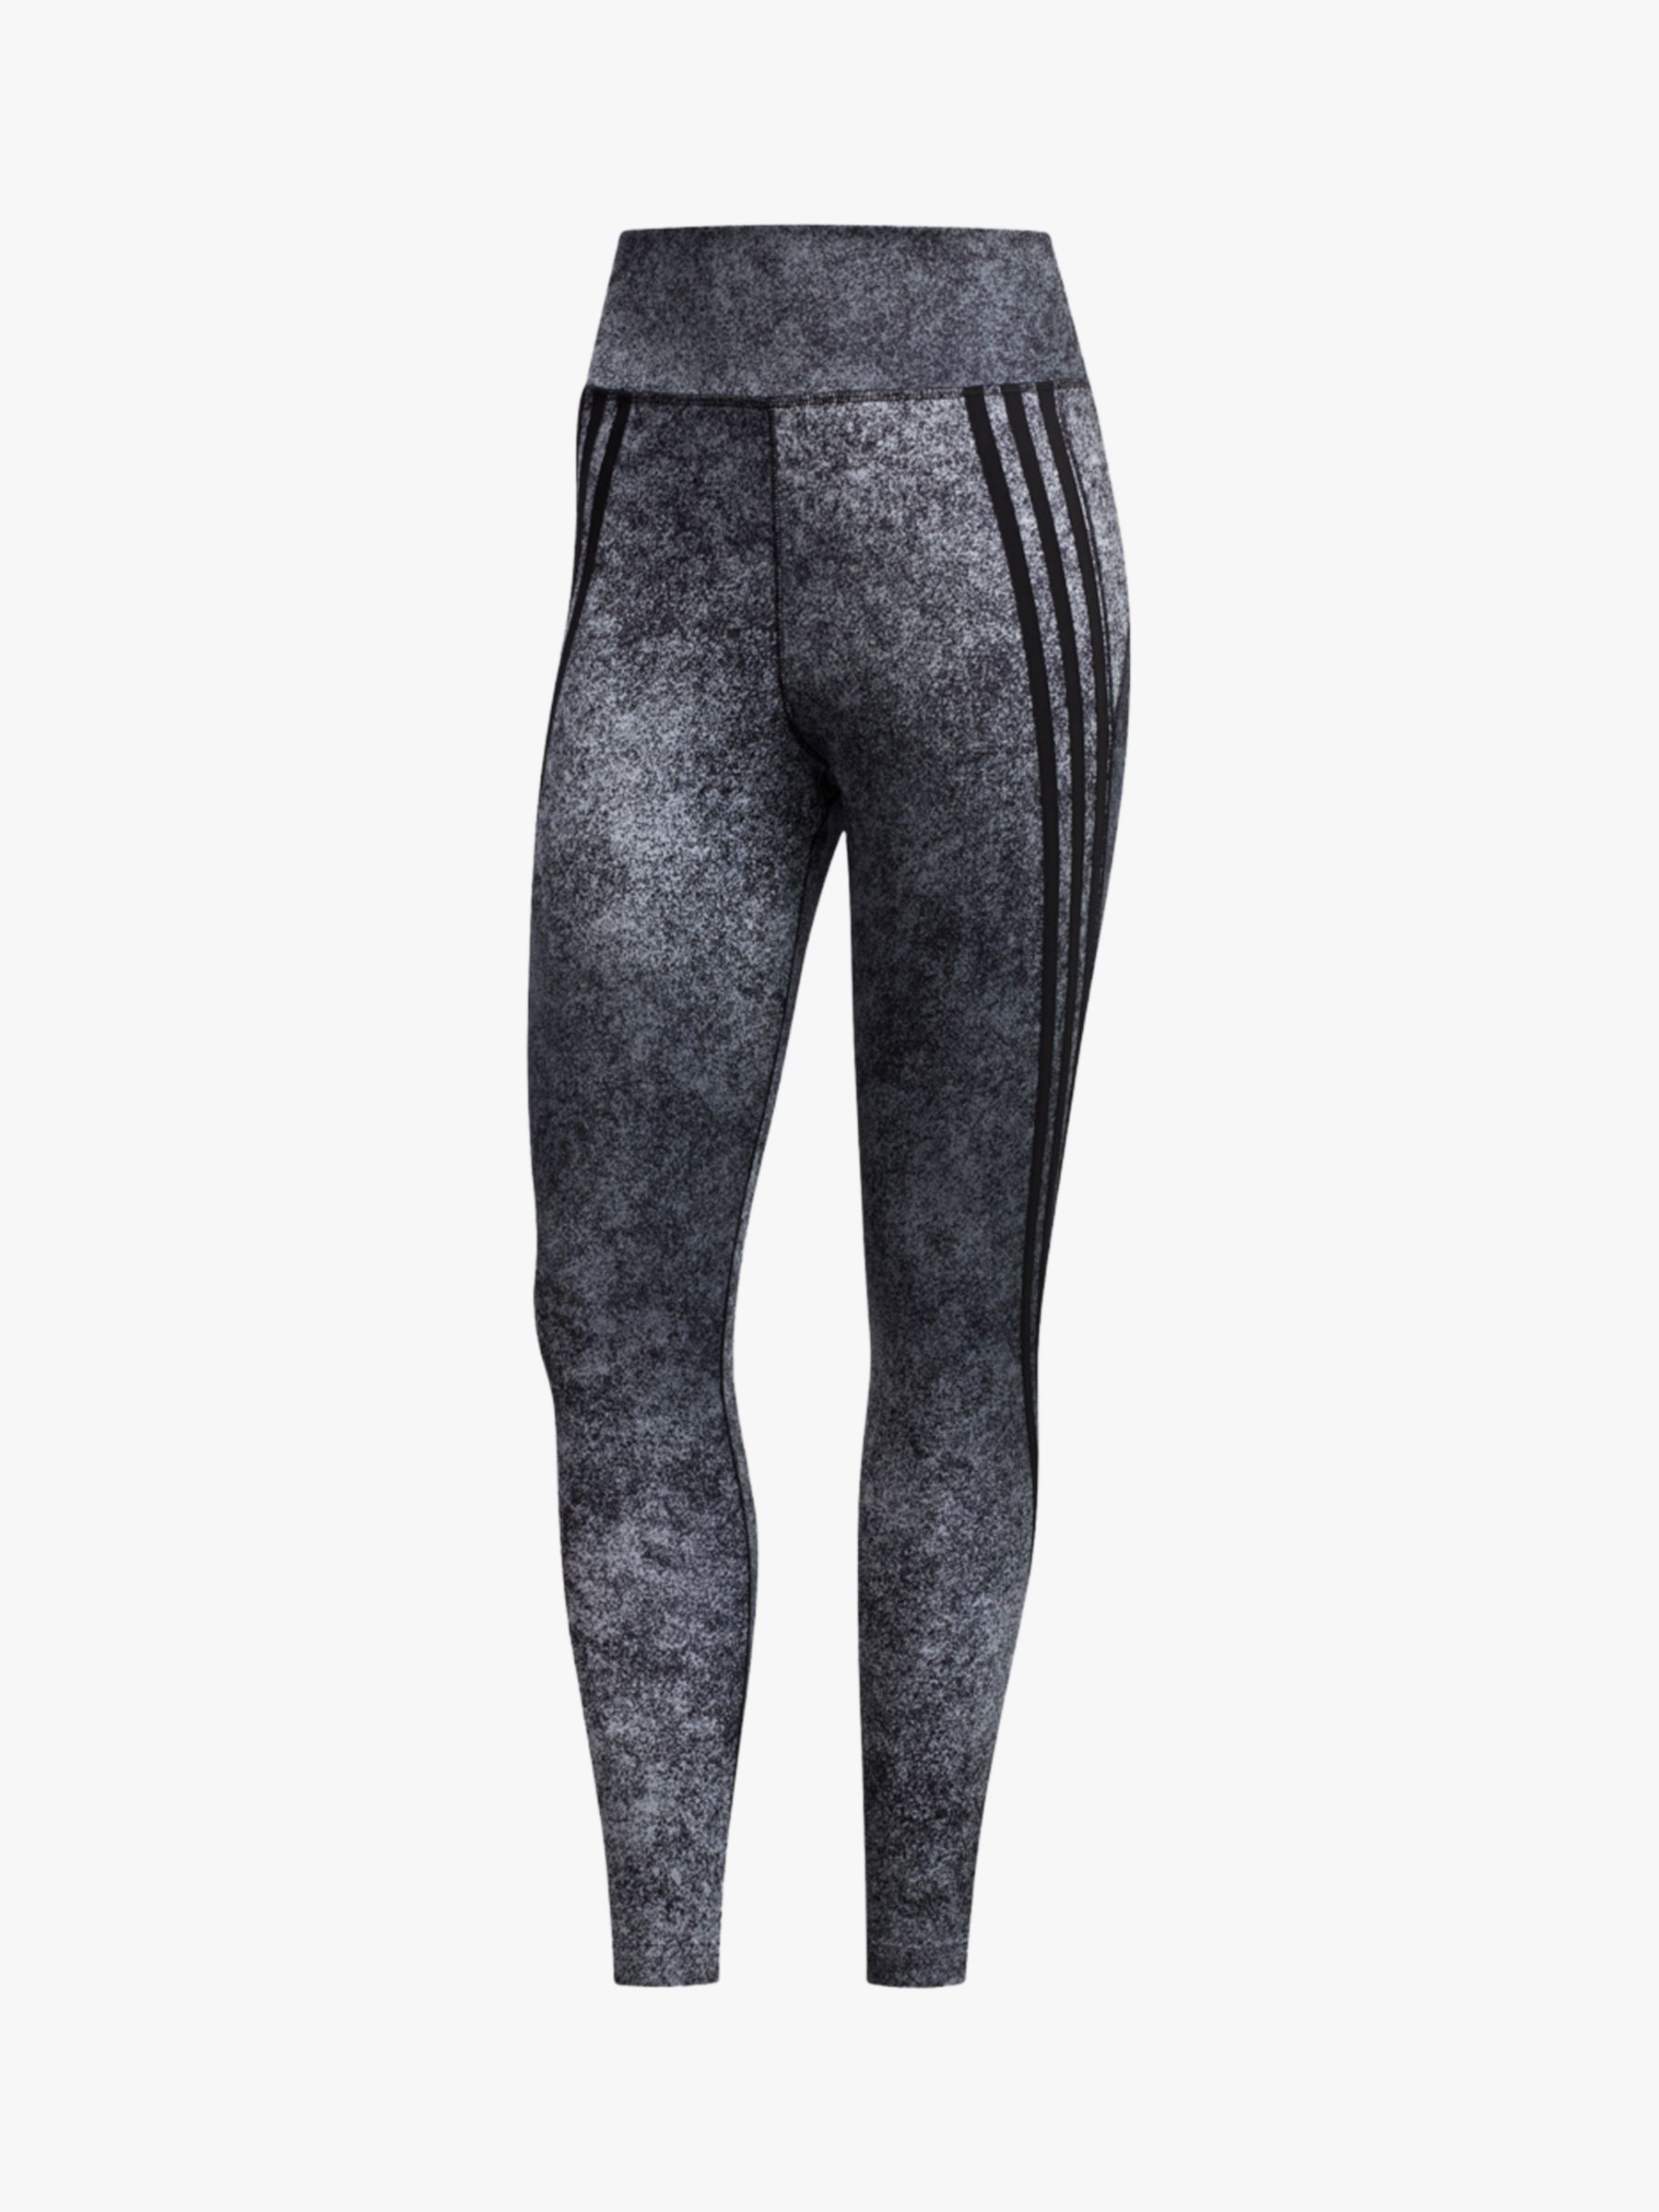 Buy adidas Feel Brilliant 7/8 Training Tights, Black, XS Online at www.retrievedmagnetic.com